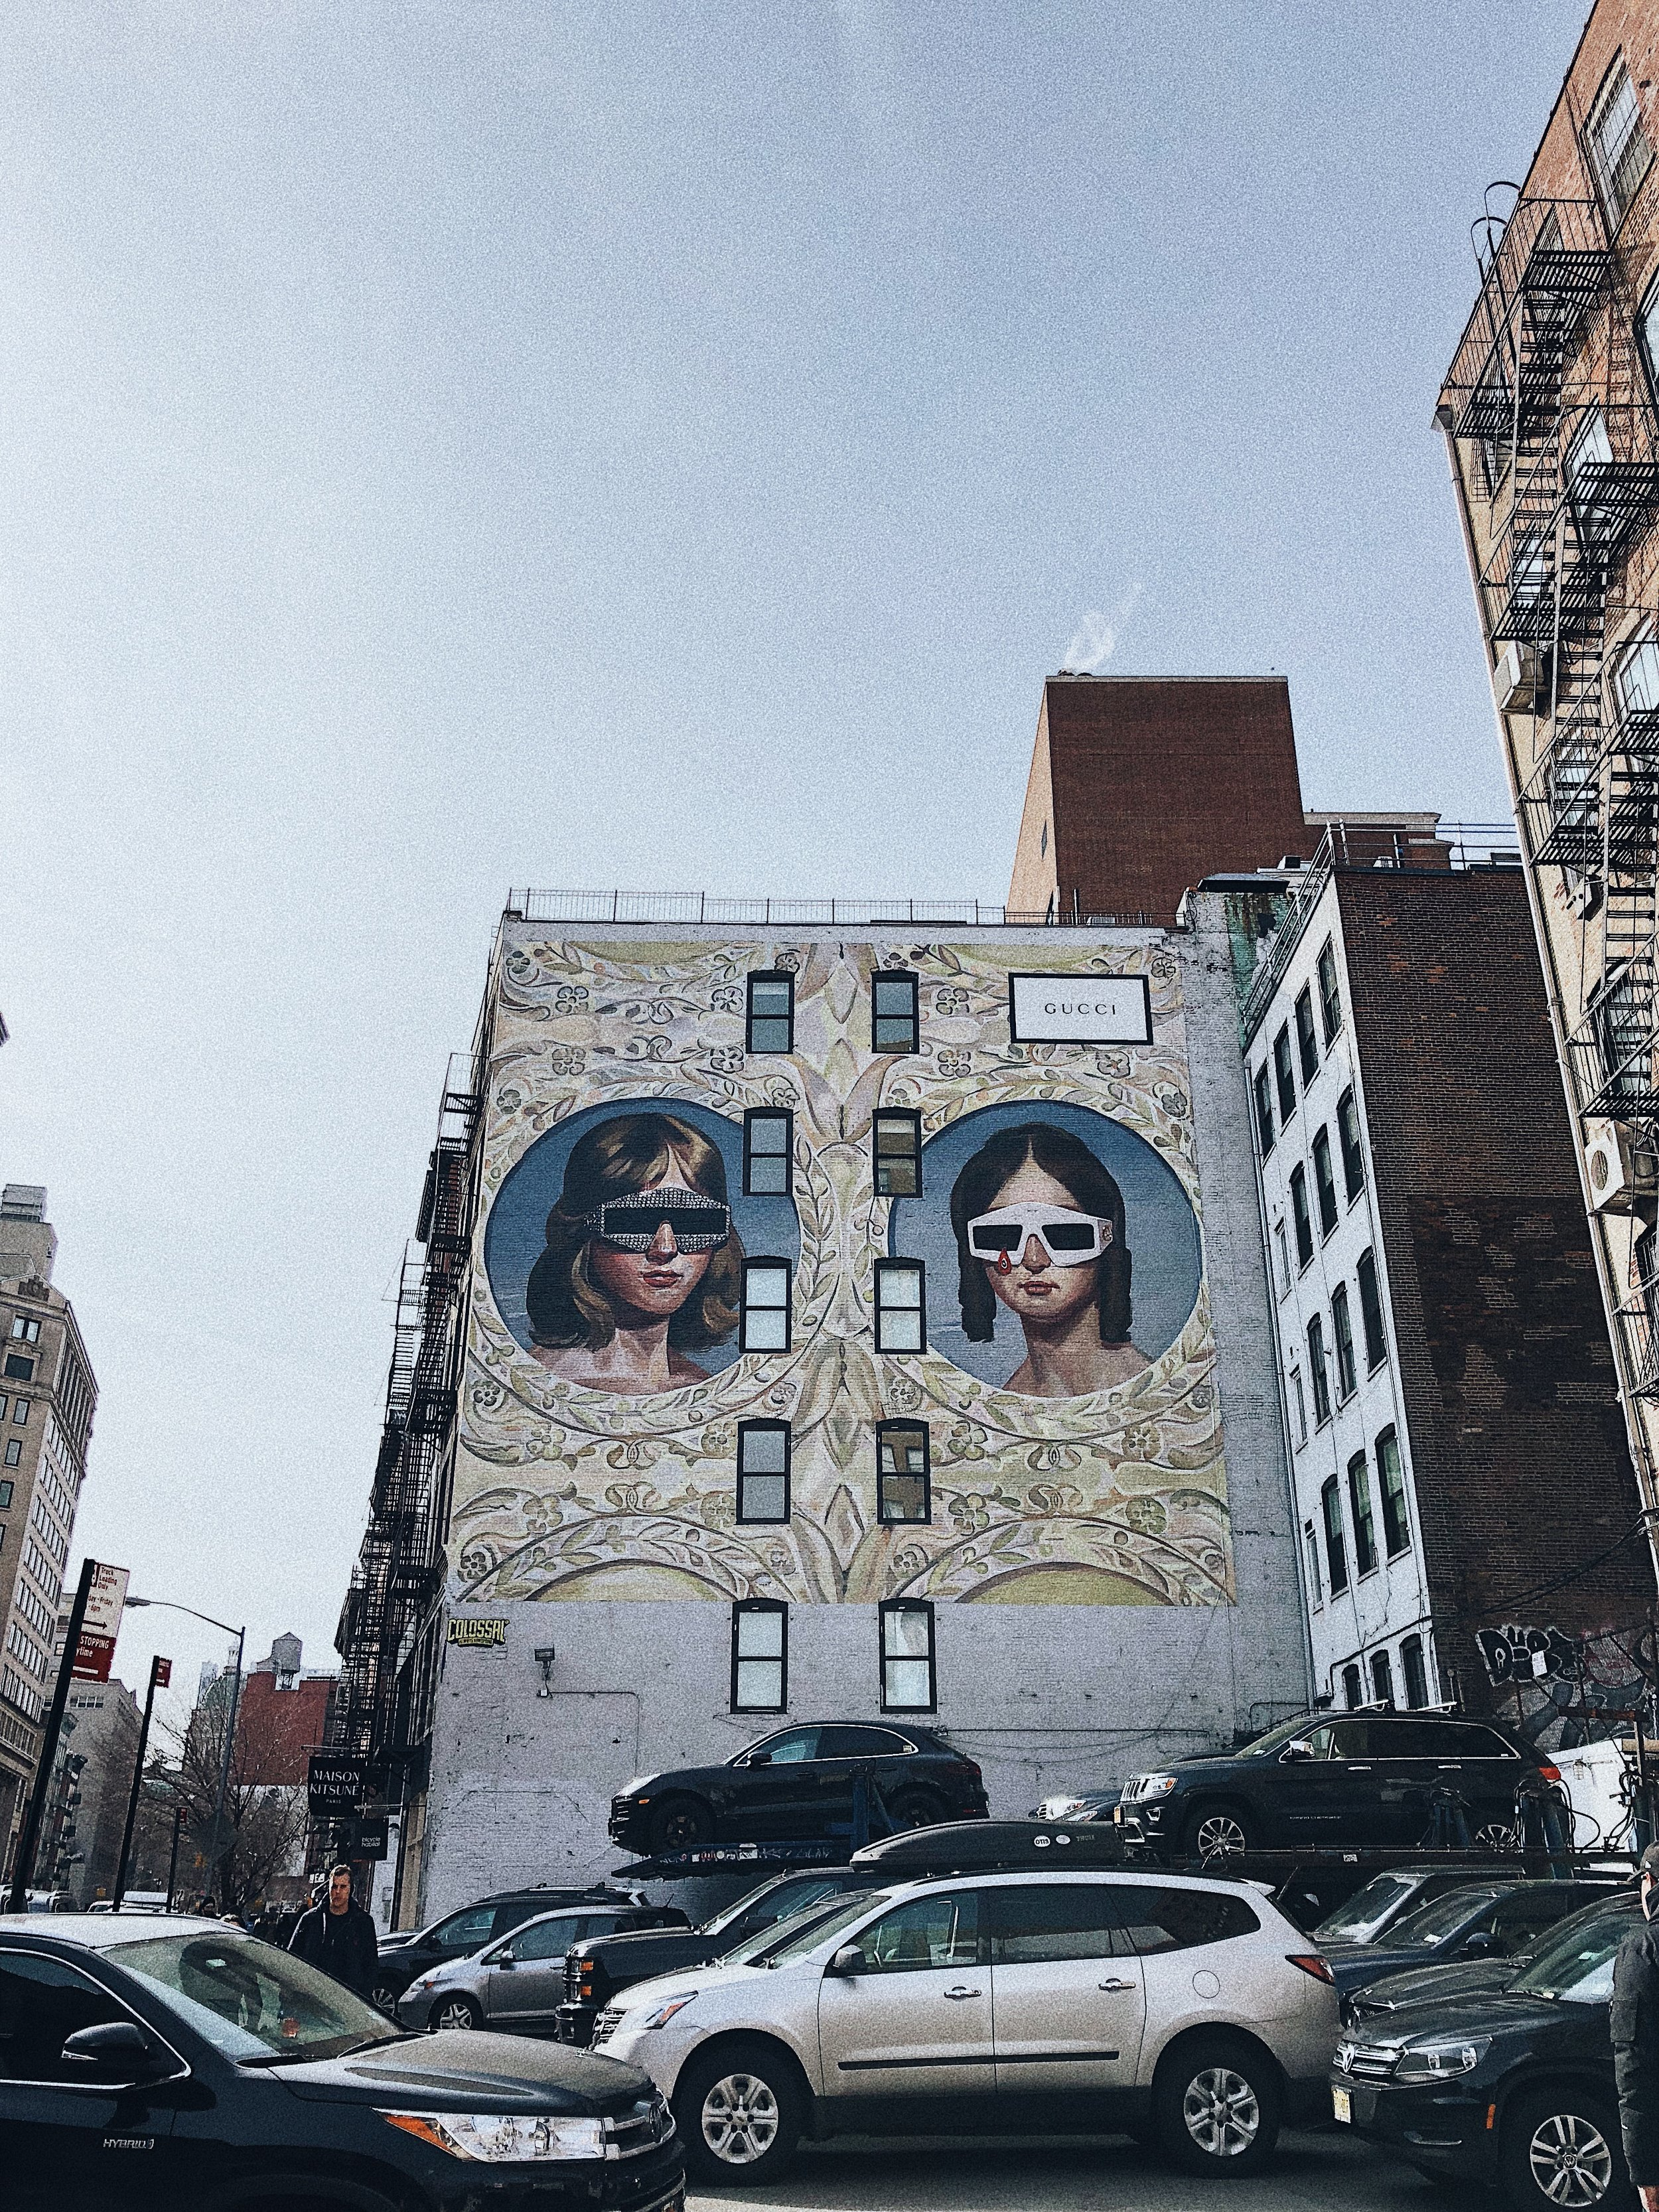 How amazing is this Gucci mural? I passed it every day walking into Soho.